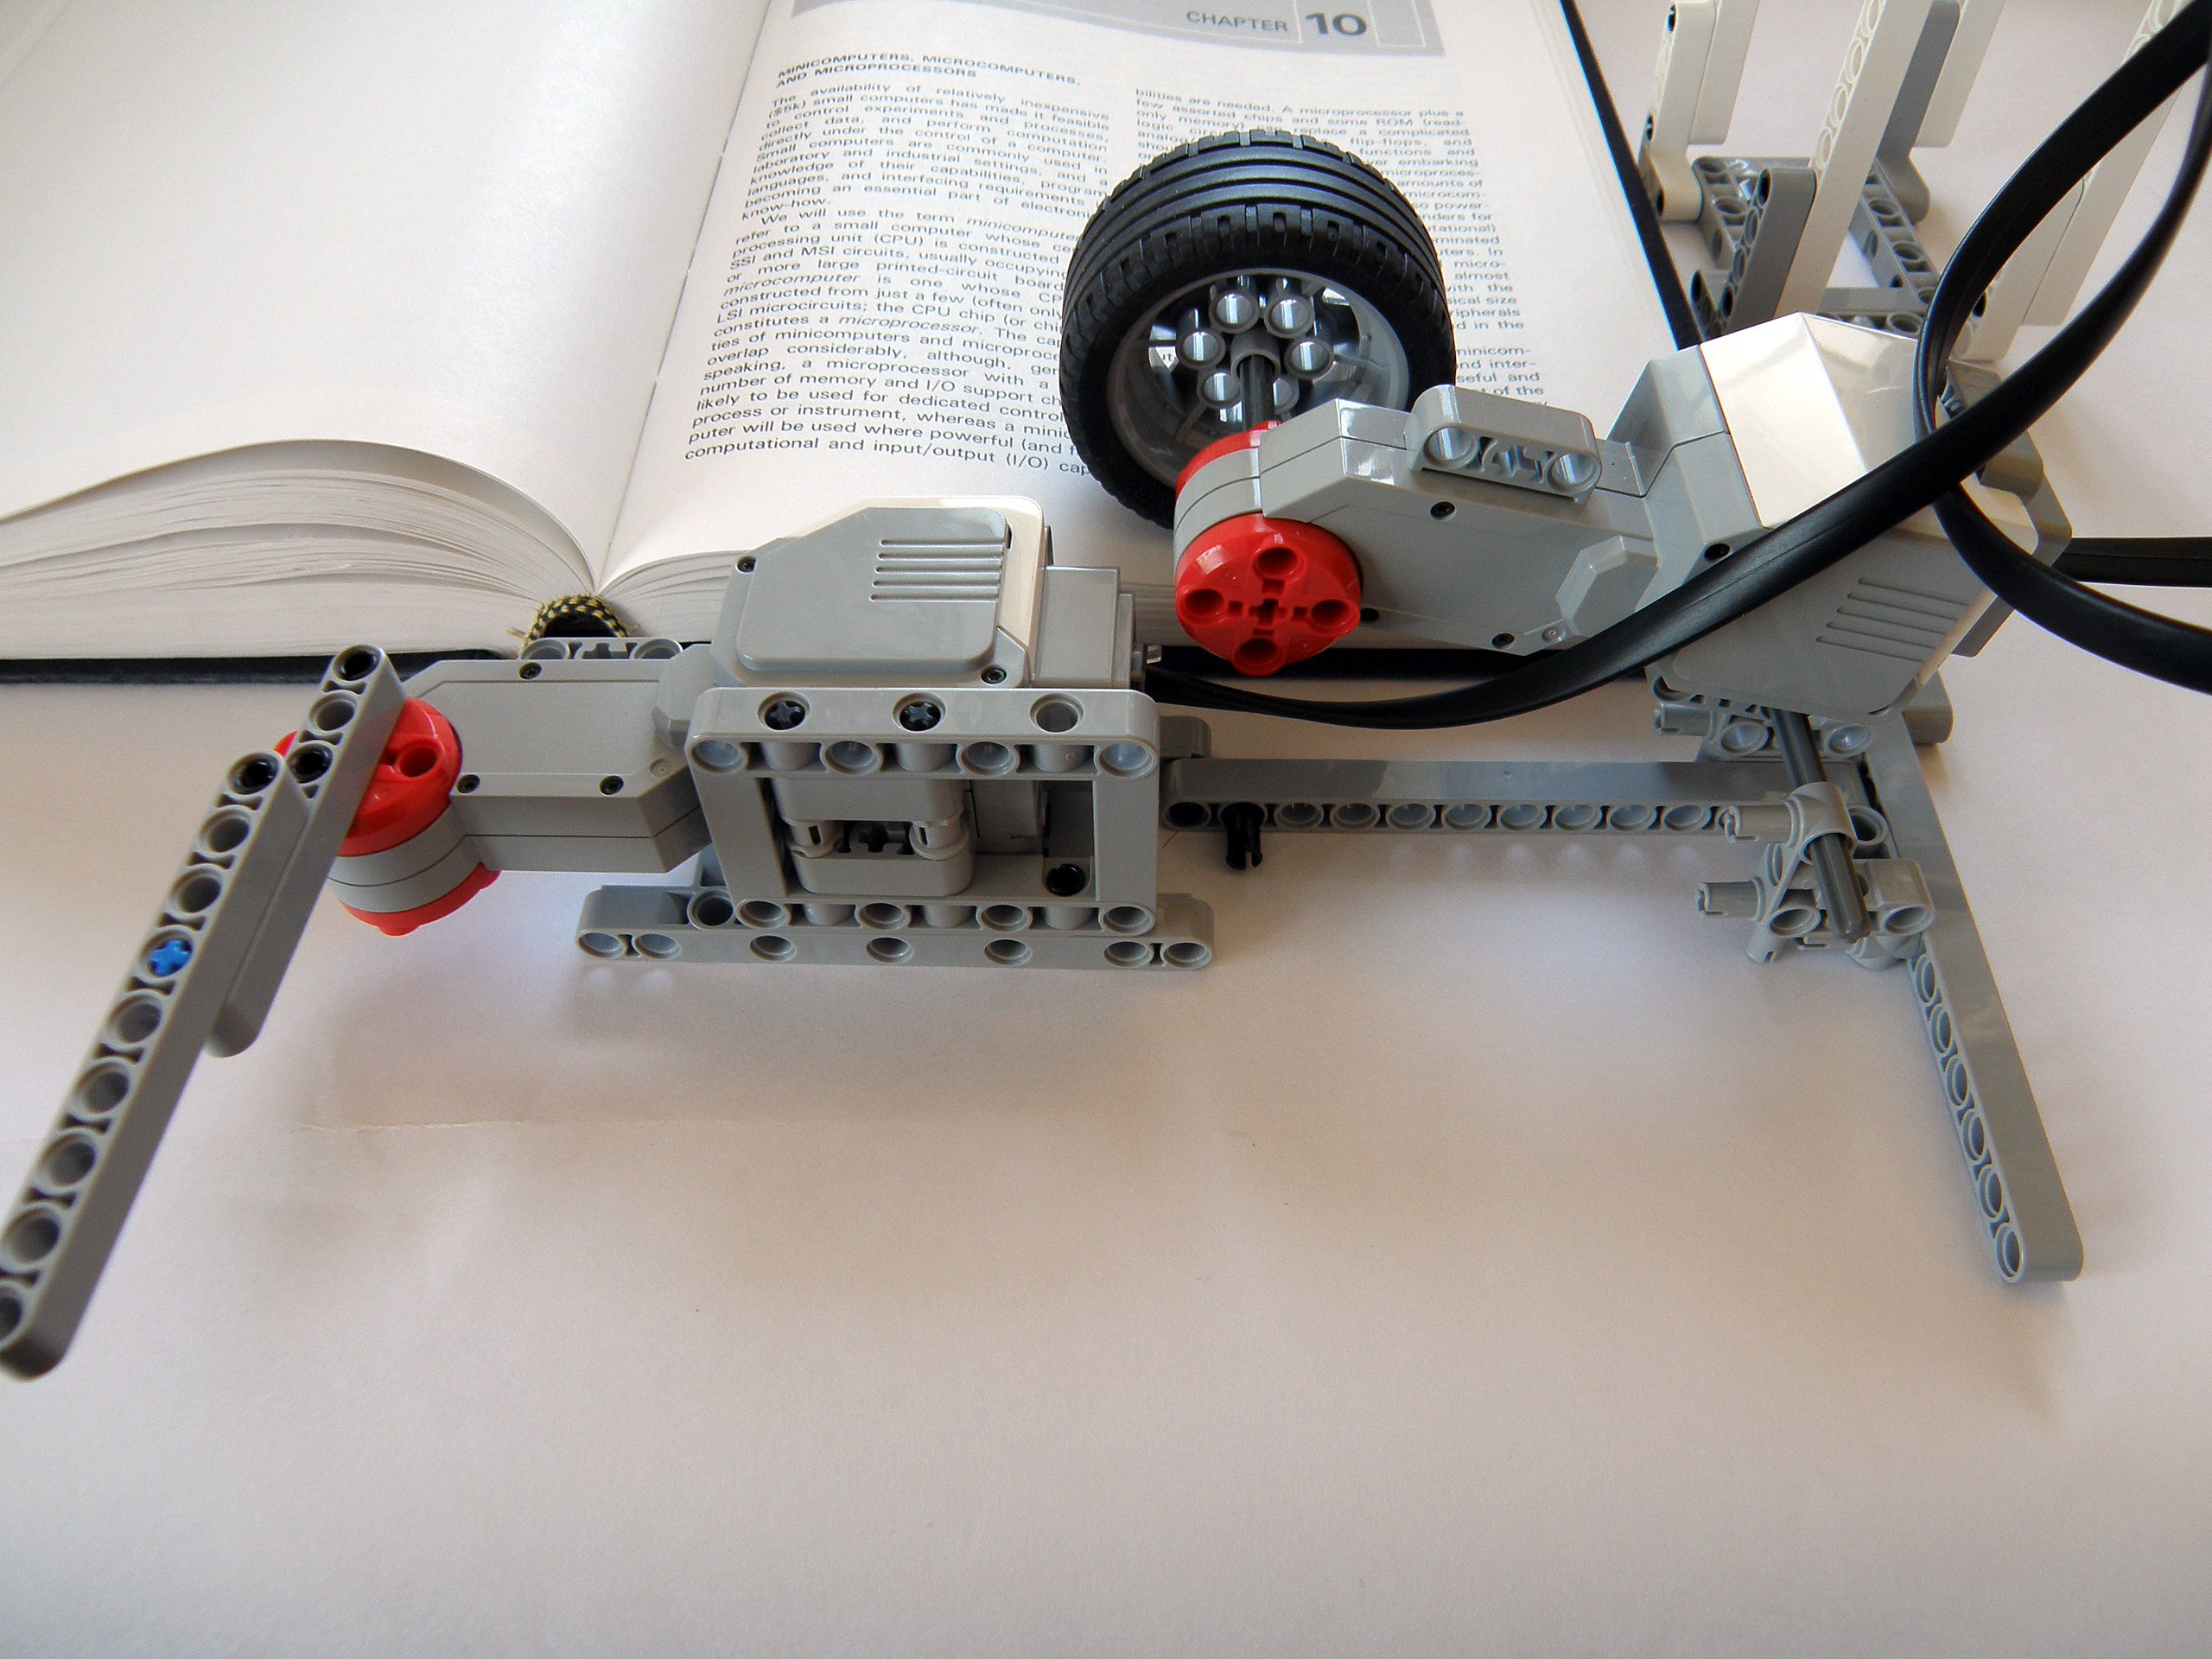 A closer look at the page turning mechanism.